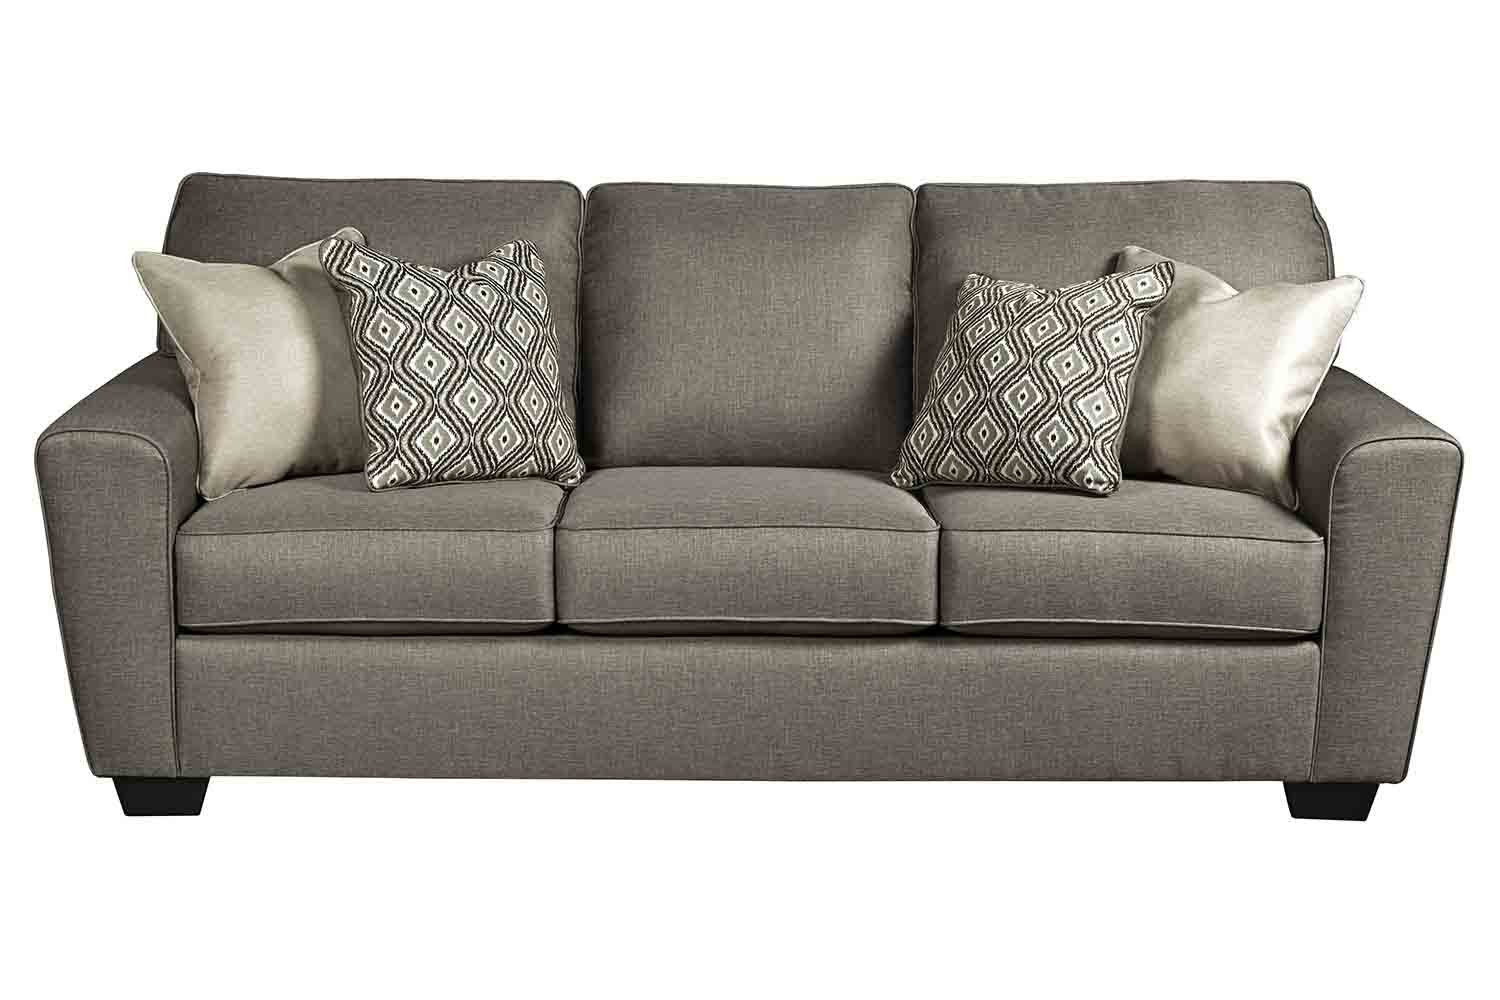 space options in and with posts sofa apartments bed ikea chaise best couches soderhamn stylish sofas spaces saving small couch living for a blog room